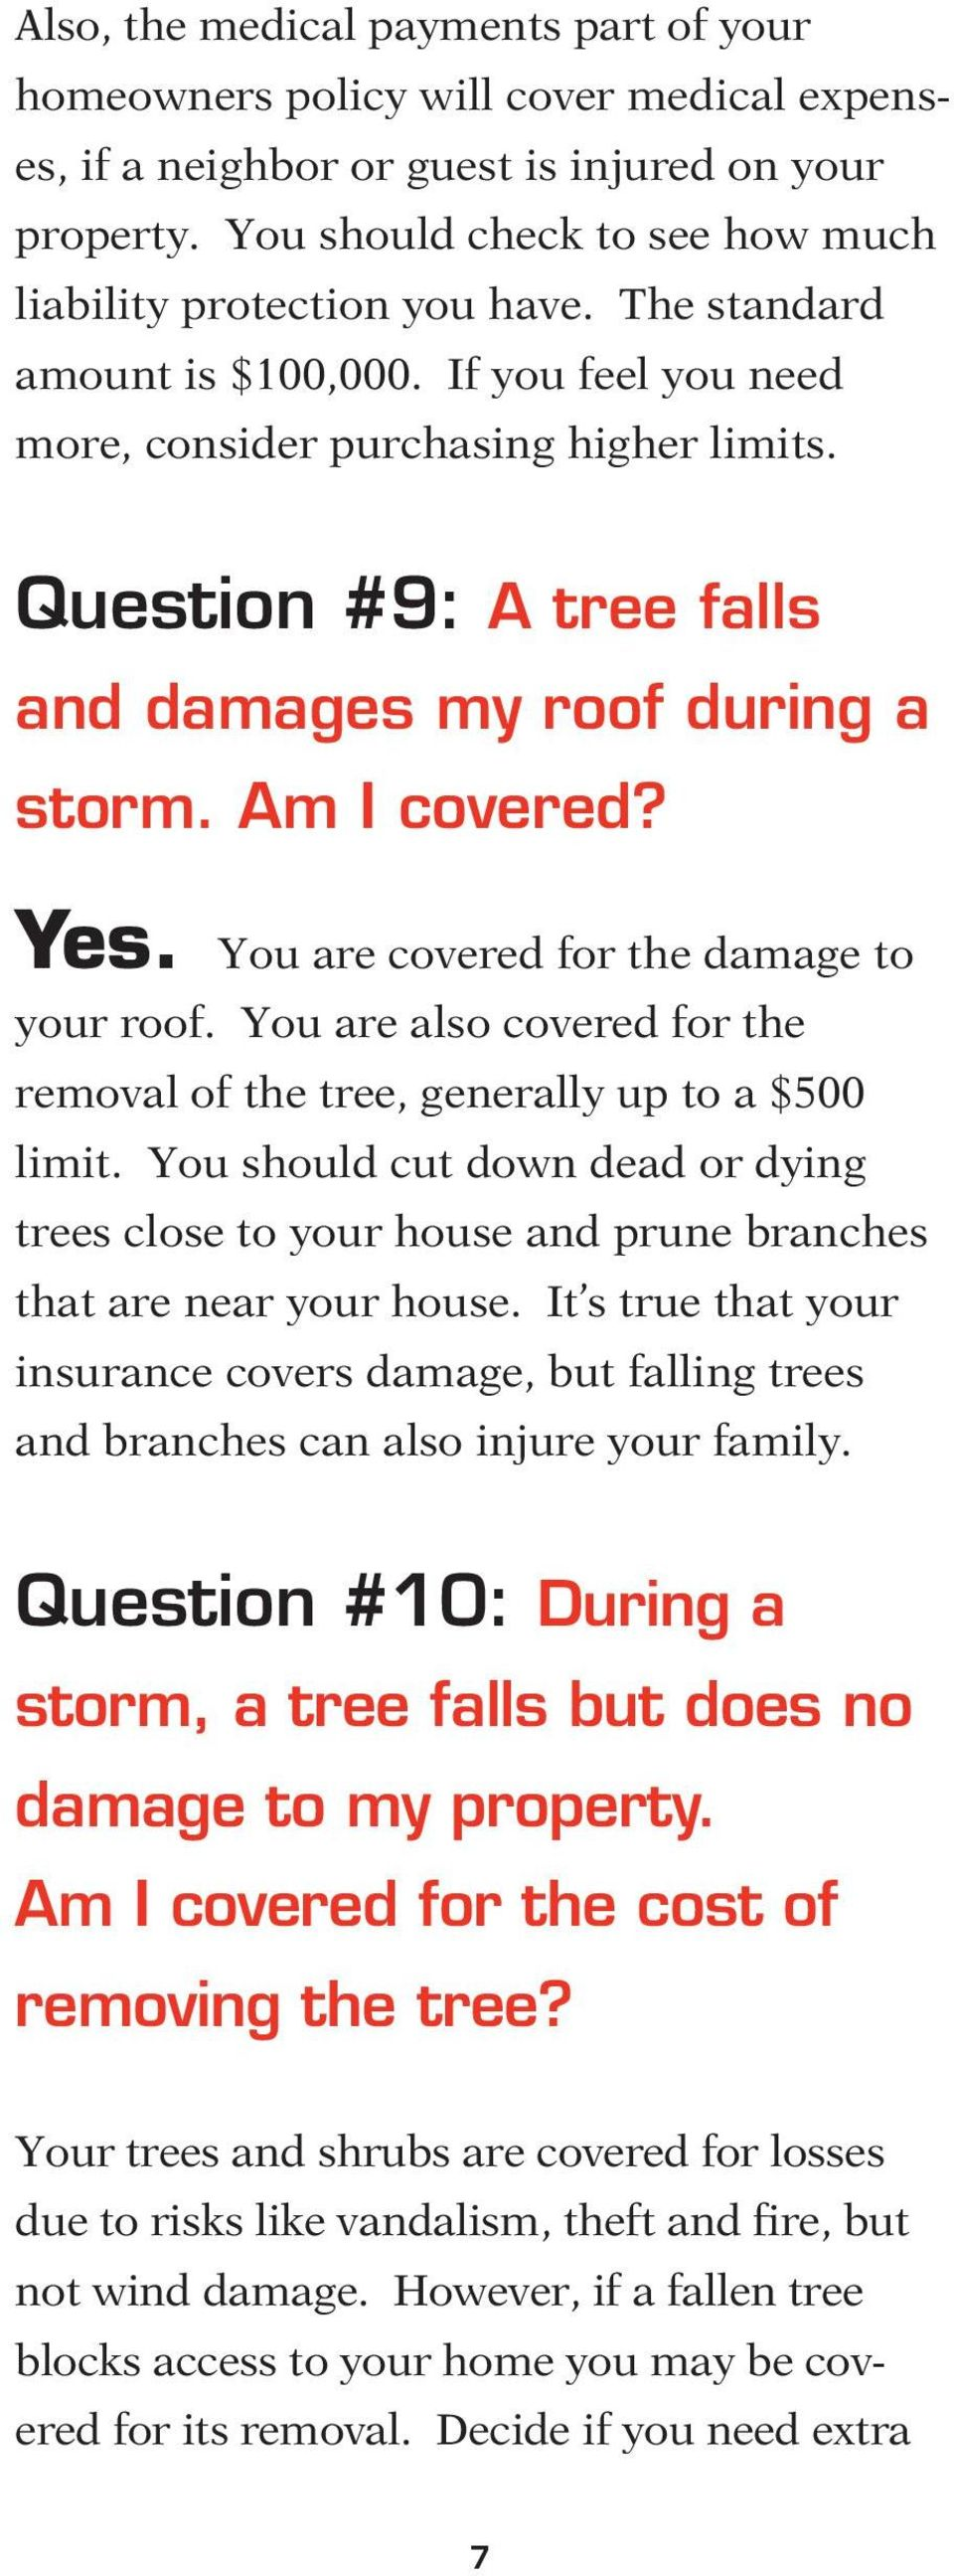 Question #9: A tree falls and damages my roof during a storm. Am I covered? Yes. You are covered for the damage to your roof.